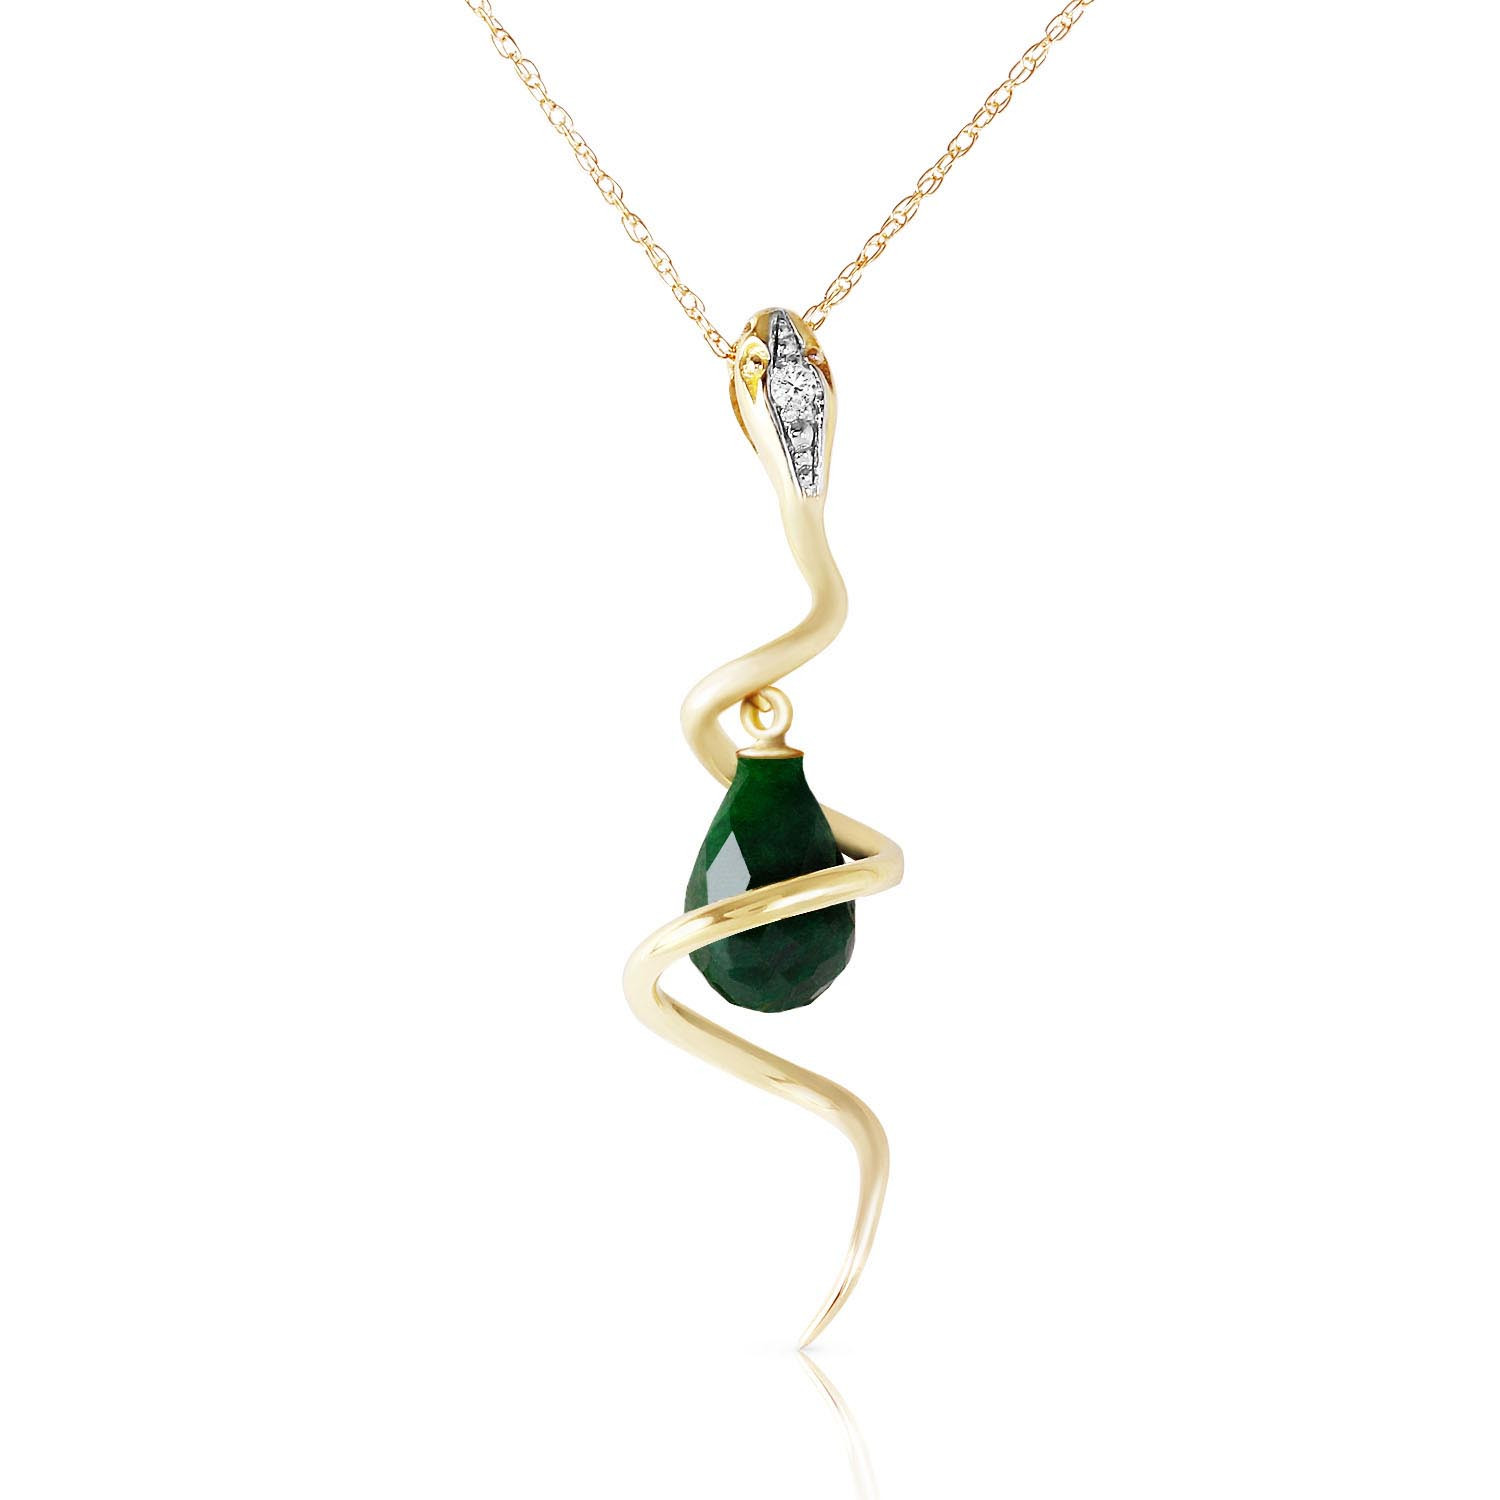 Emerald & Diamond Serpent Pendant Necklace in 9ct Gold